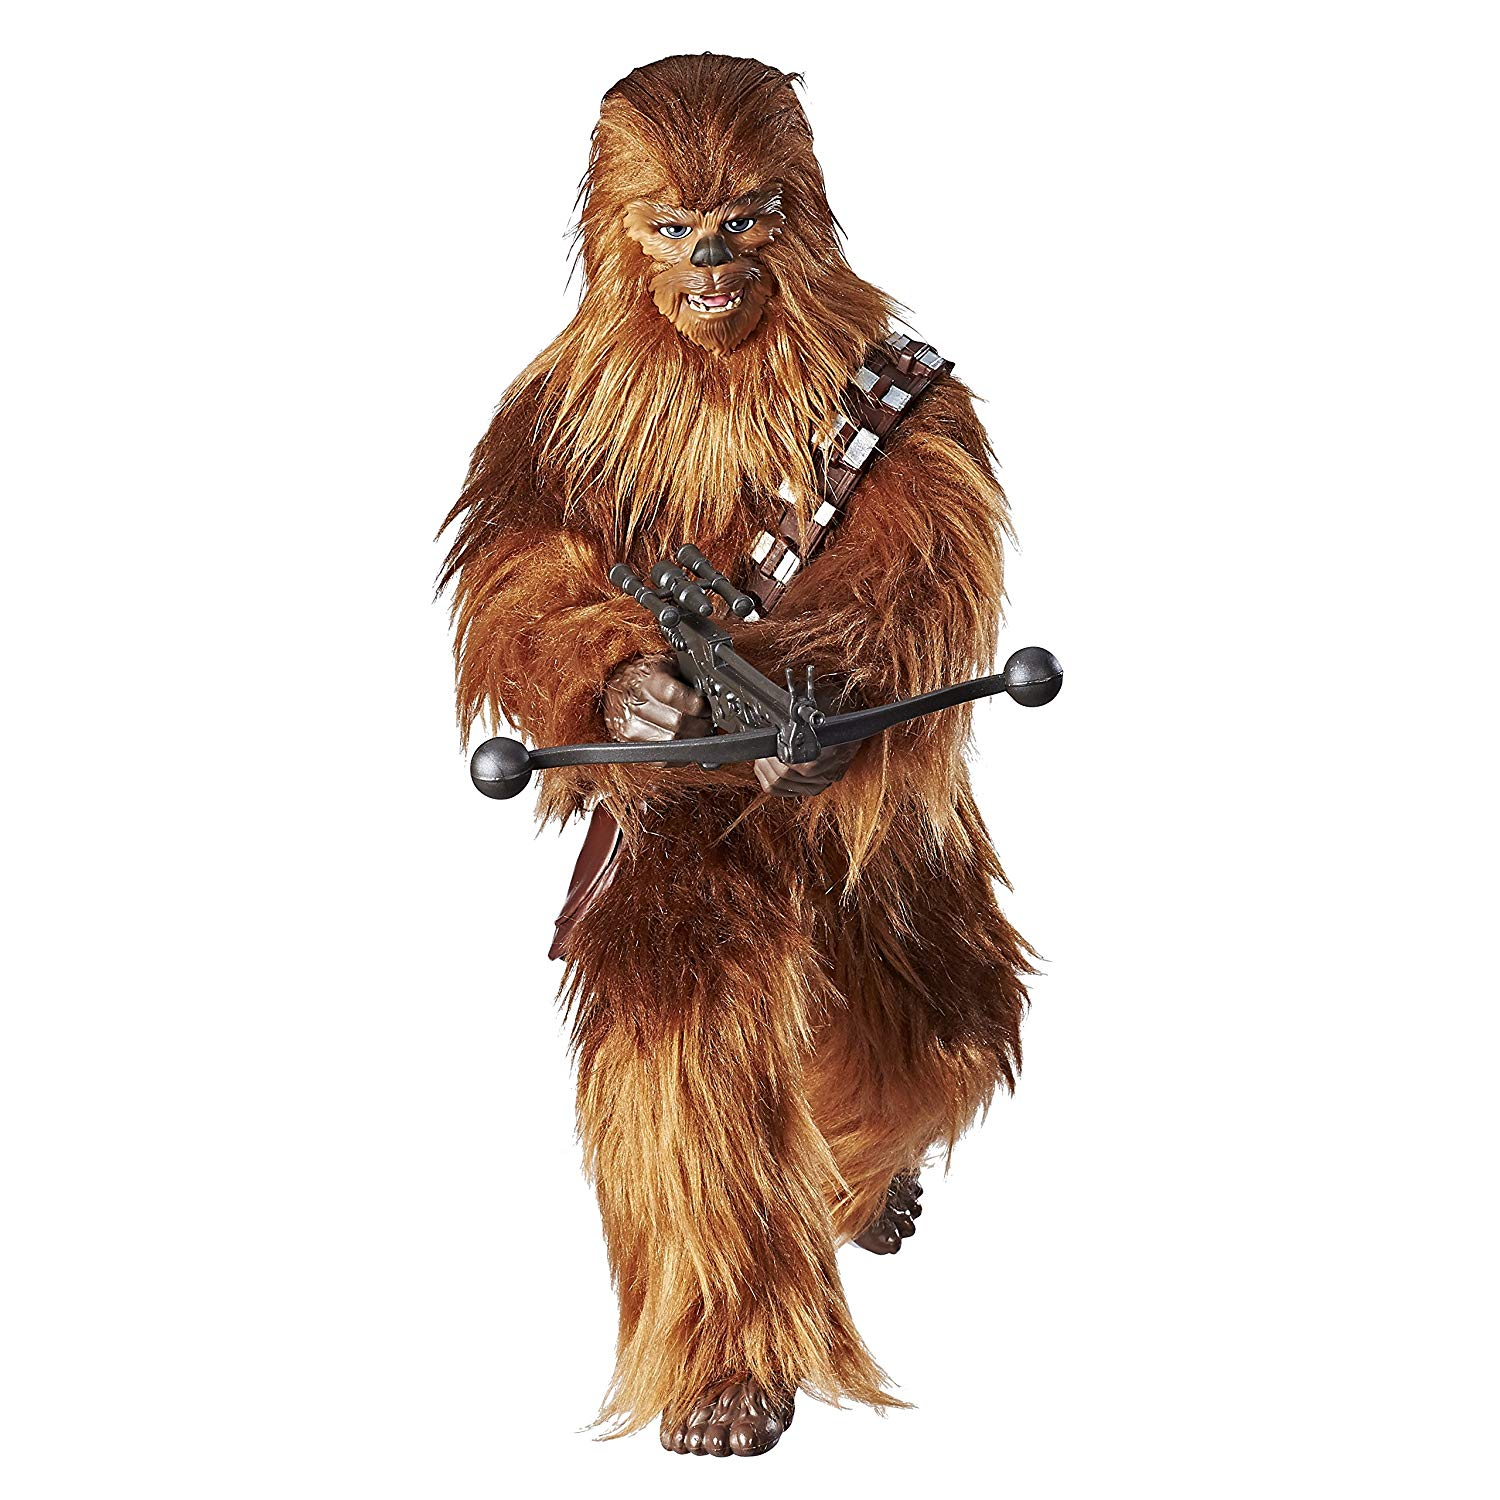 91iETiJtF L. SL1500 - Star Wars Forces of Destiny Roaring Chewbacca Adventure Figure Toy - Sounds and Looks Just Like Real Chewy - Highly Poseable - Comes with Bandolier and...